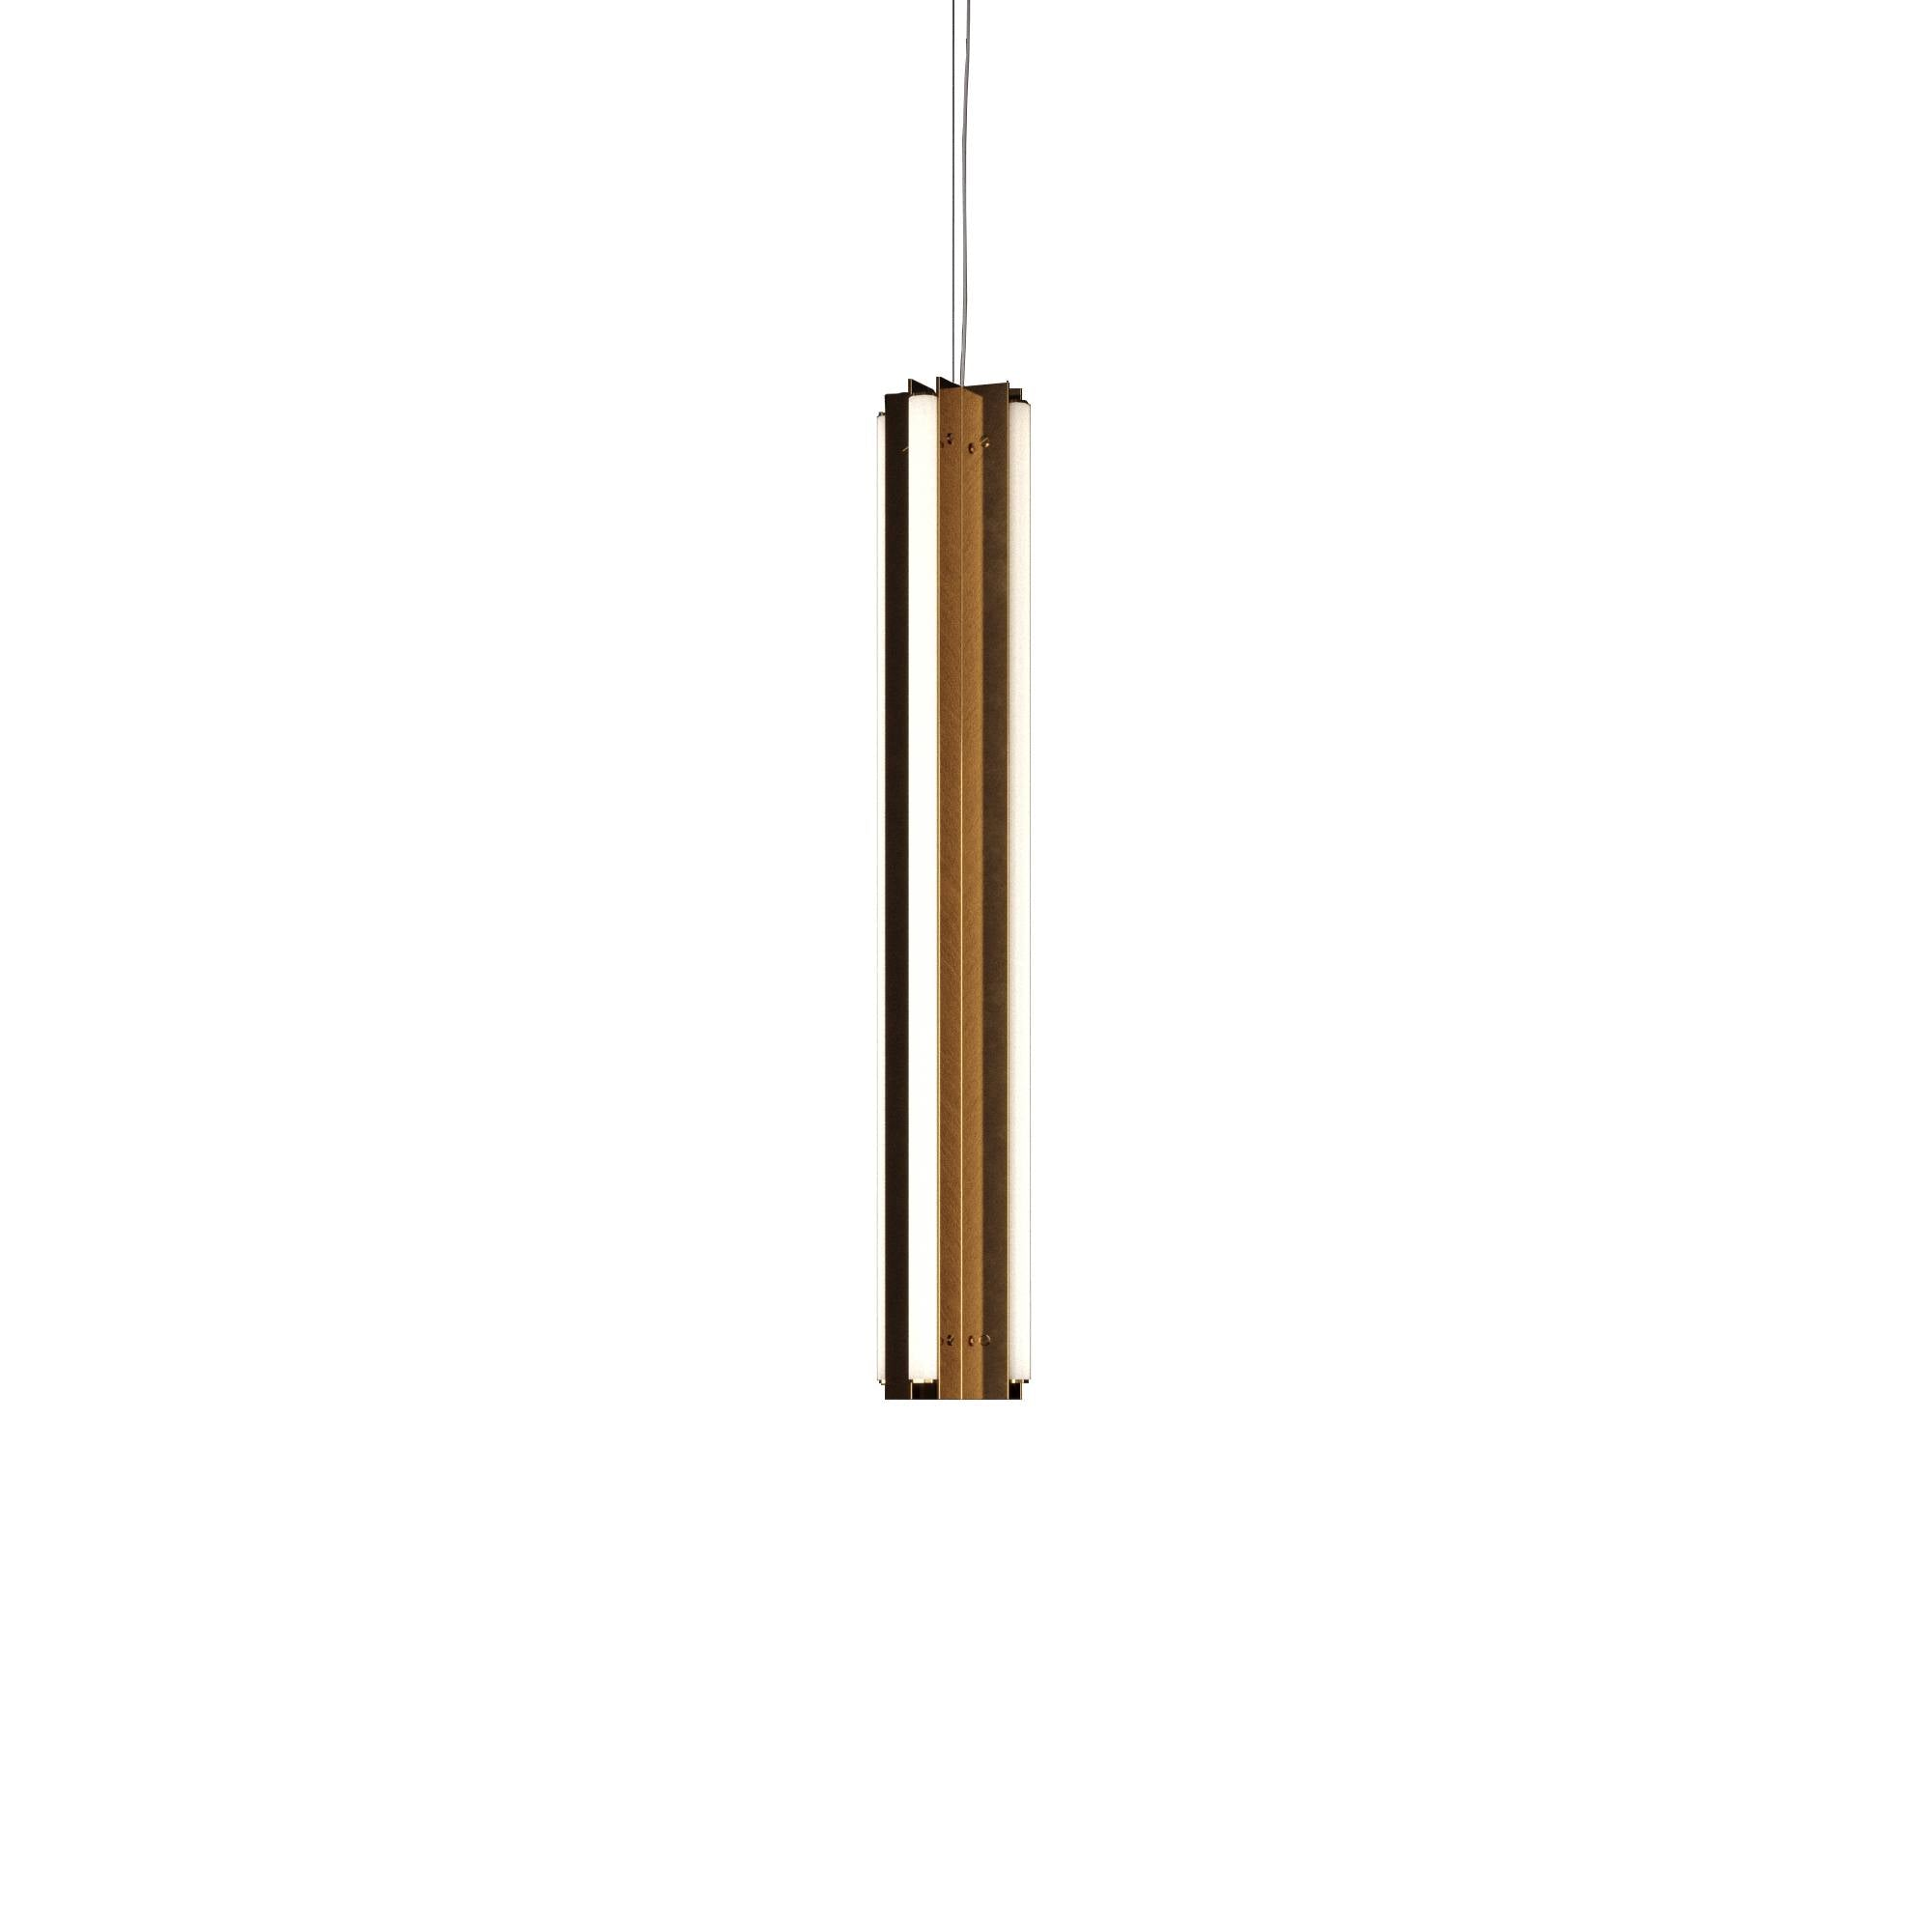 "Axis X Suspension Light: 36"" + Polished Brass + Vertical"